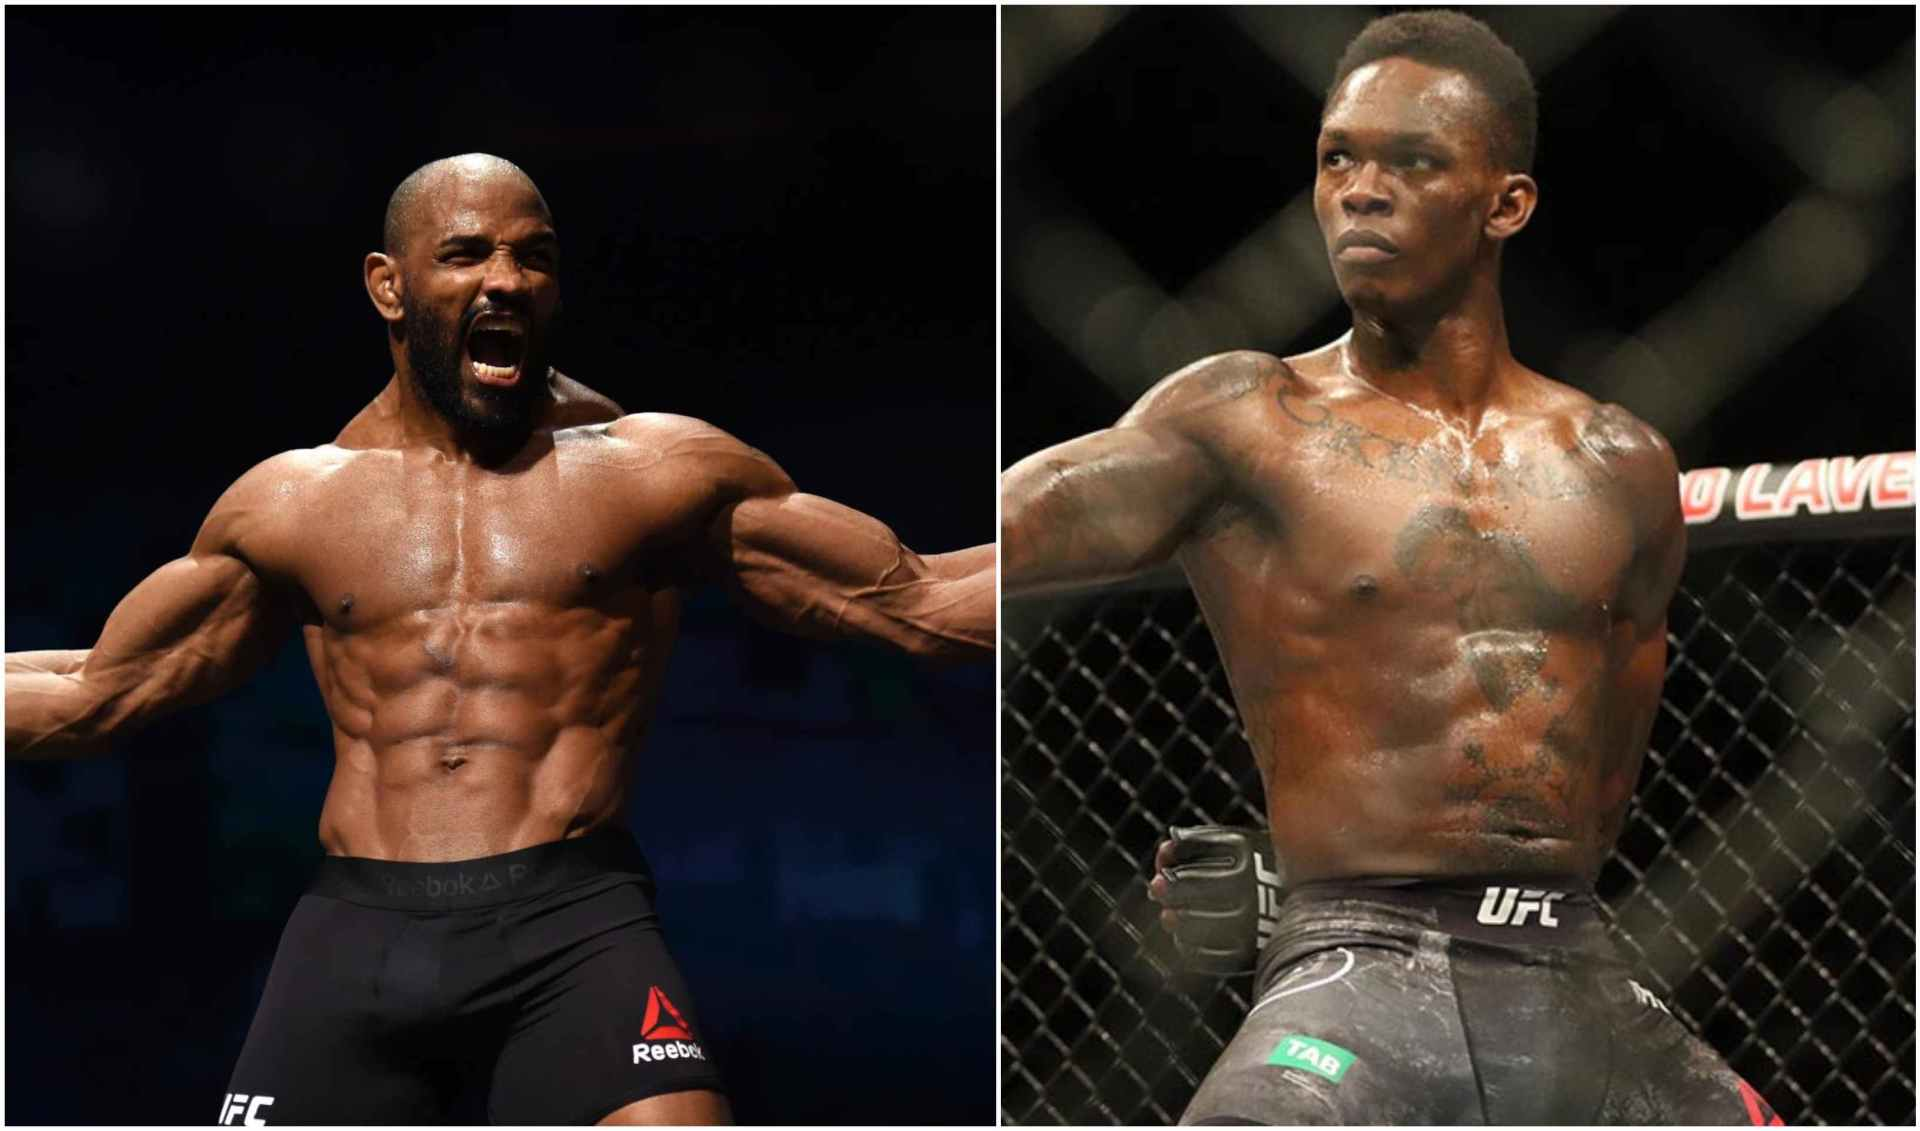 Yoel Romero and Israel Adesanya verbally agree to fight each other after Paulo Costa injury layoff - Romero